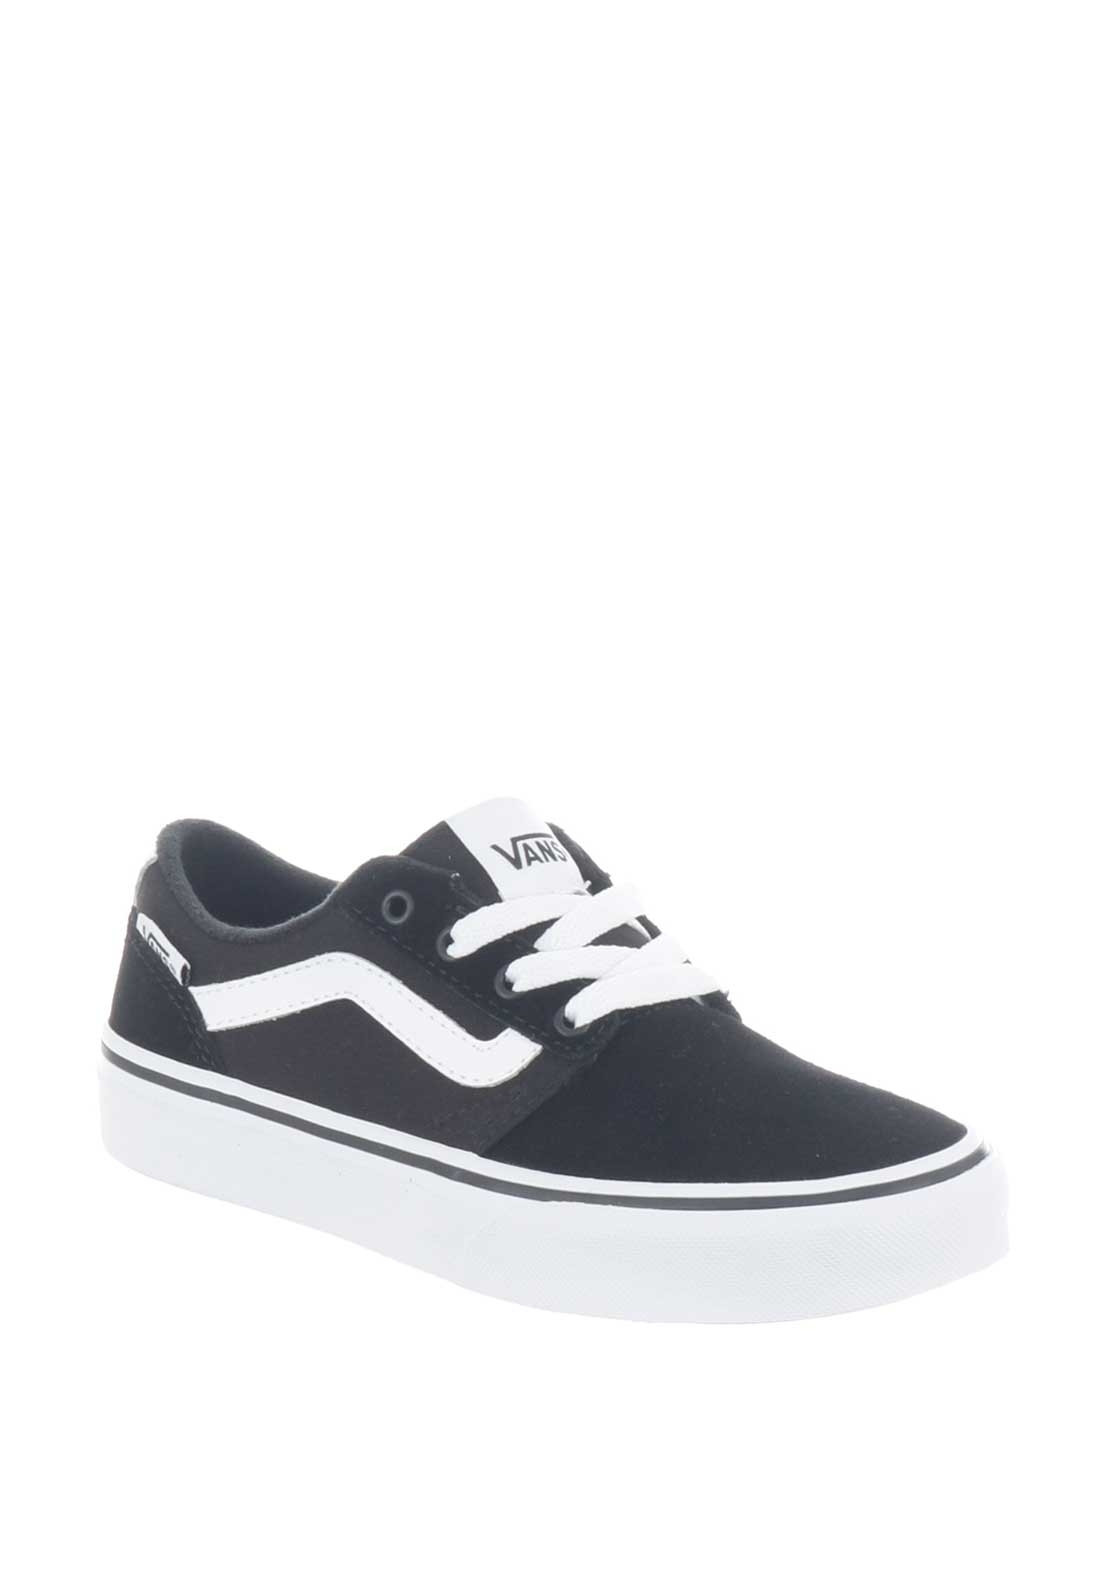 d3be64b3a3 Vans Boys Suede Chapman Stripe Trainers